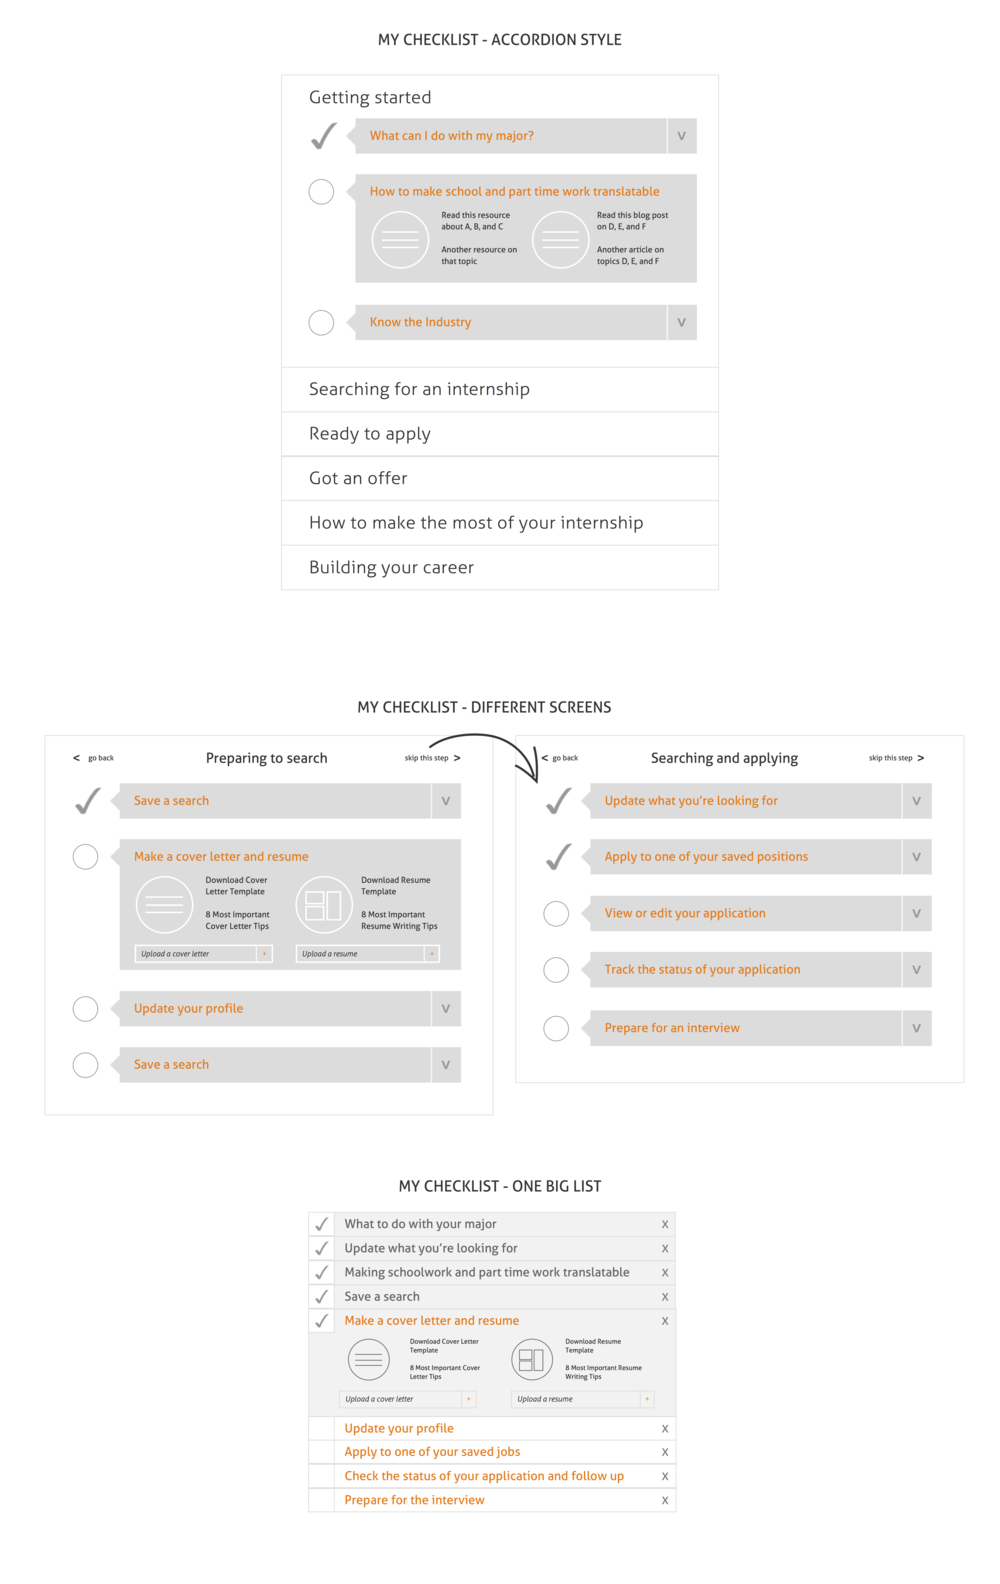 These are early wireframes of different ways to visually present the checklist. In the end, I went with the last one - one big list - because it simplified the experience with the nuance of expanding and collapsing tasks to declutter.